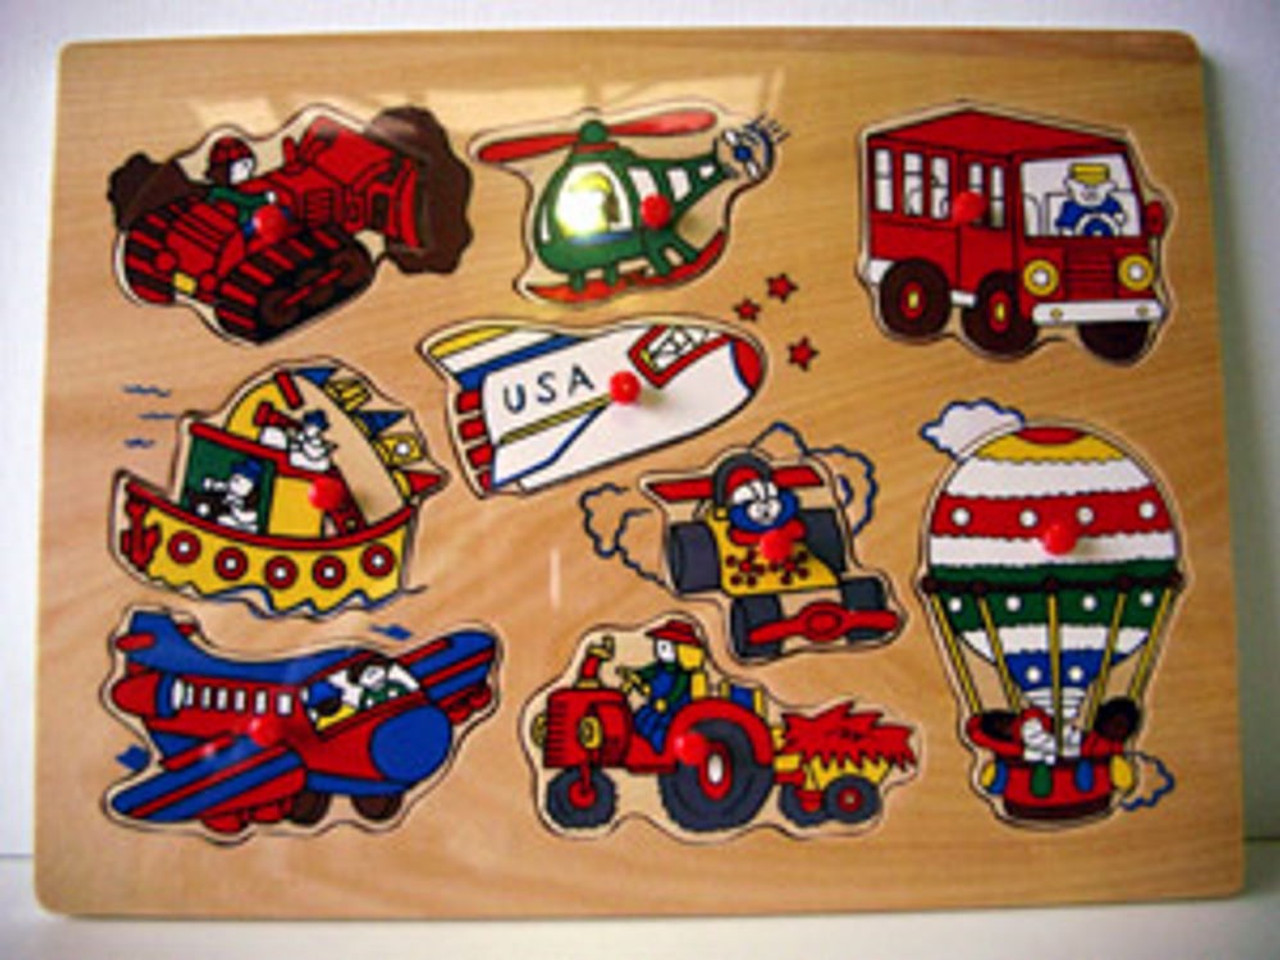 Lucky Tree- Wooden Puzzle- Transportation with knobs at Baby Barn Discounts A  wooden puzzle depicting all kinds of fun transportation. The large wooden knobs make it easy to manoeuvre for little fingers.